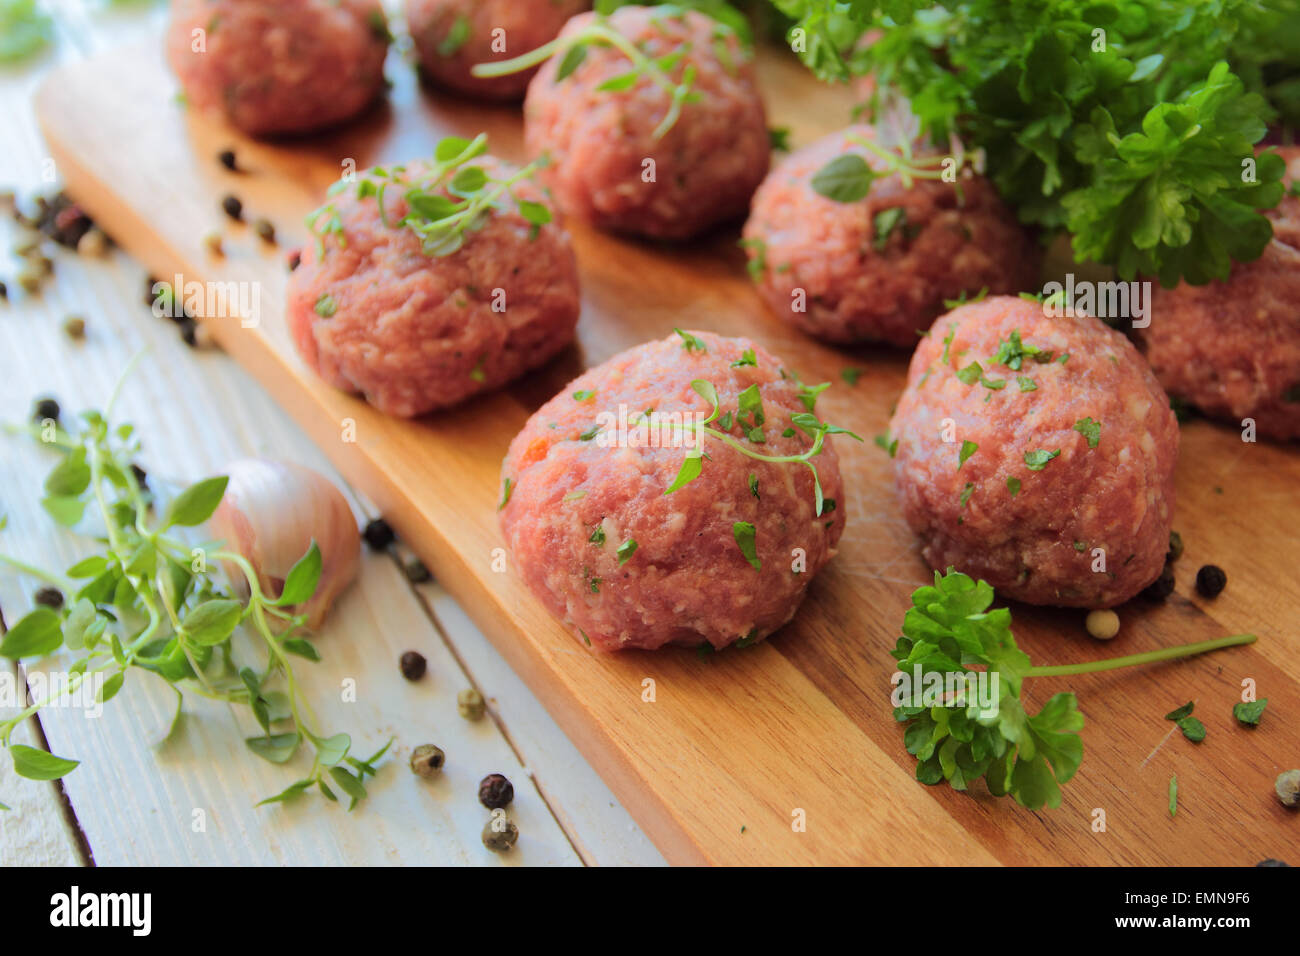 Raw meat balls with fresh parsley and herbs - Stock Image